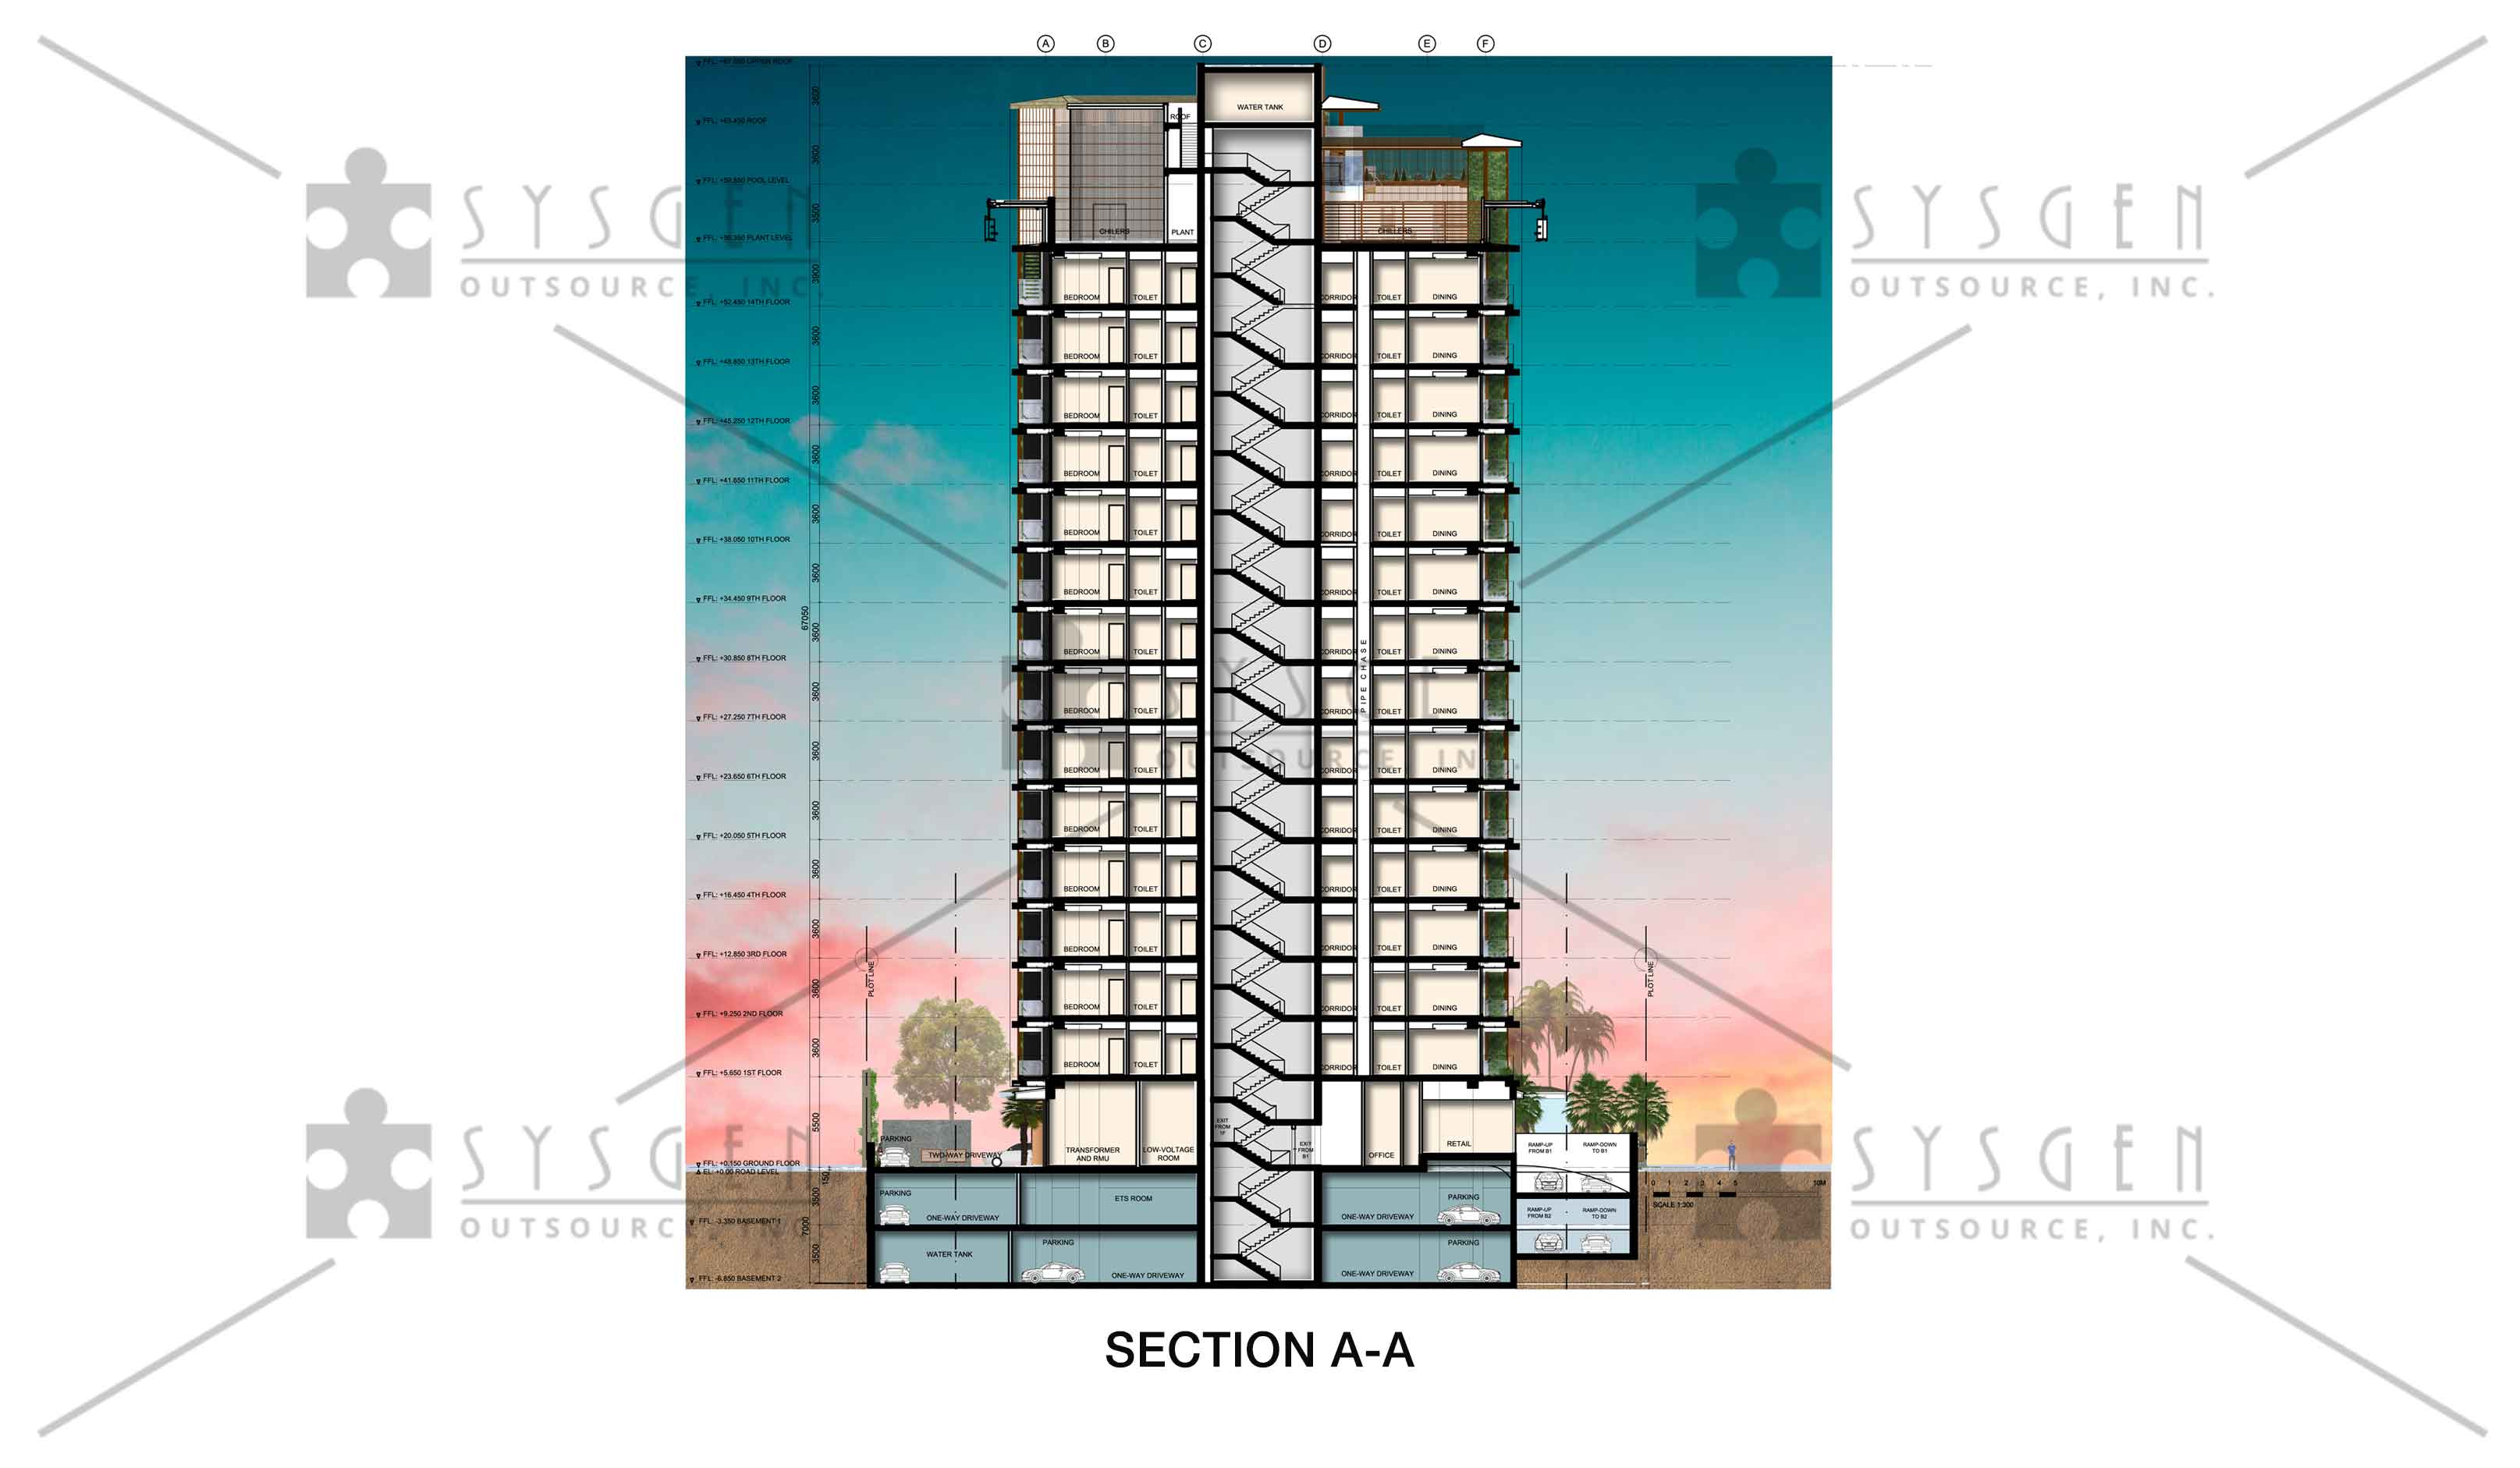 sysgen-outsource-cad-outsourcing-services-sketch-up-apartment8